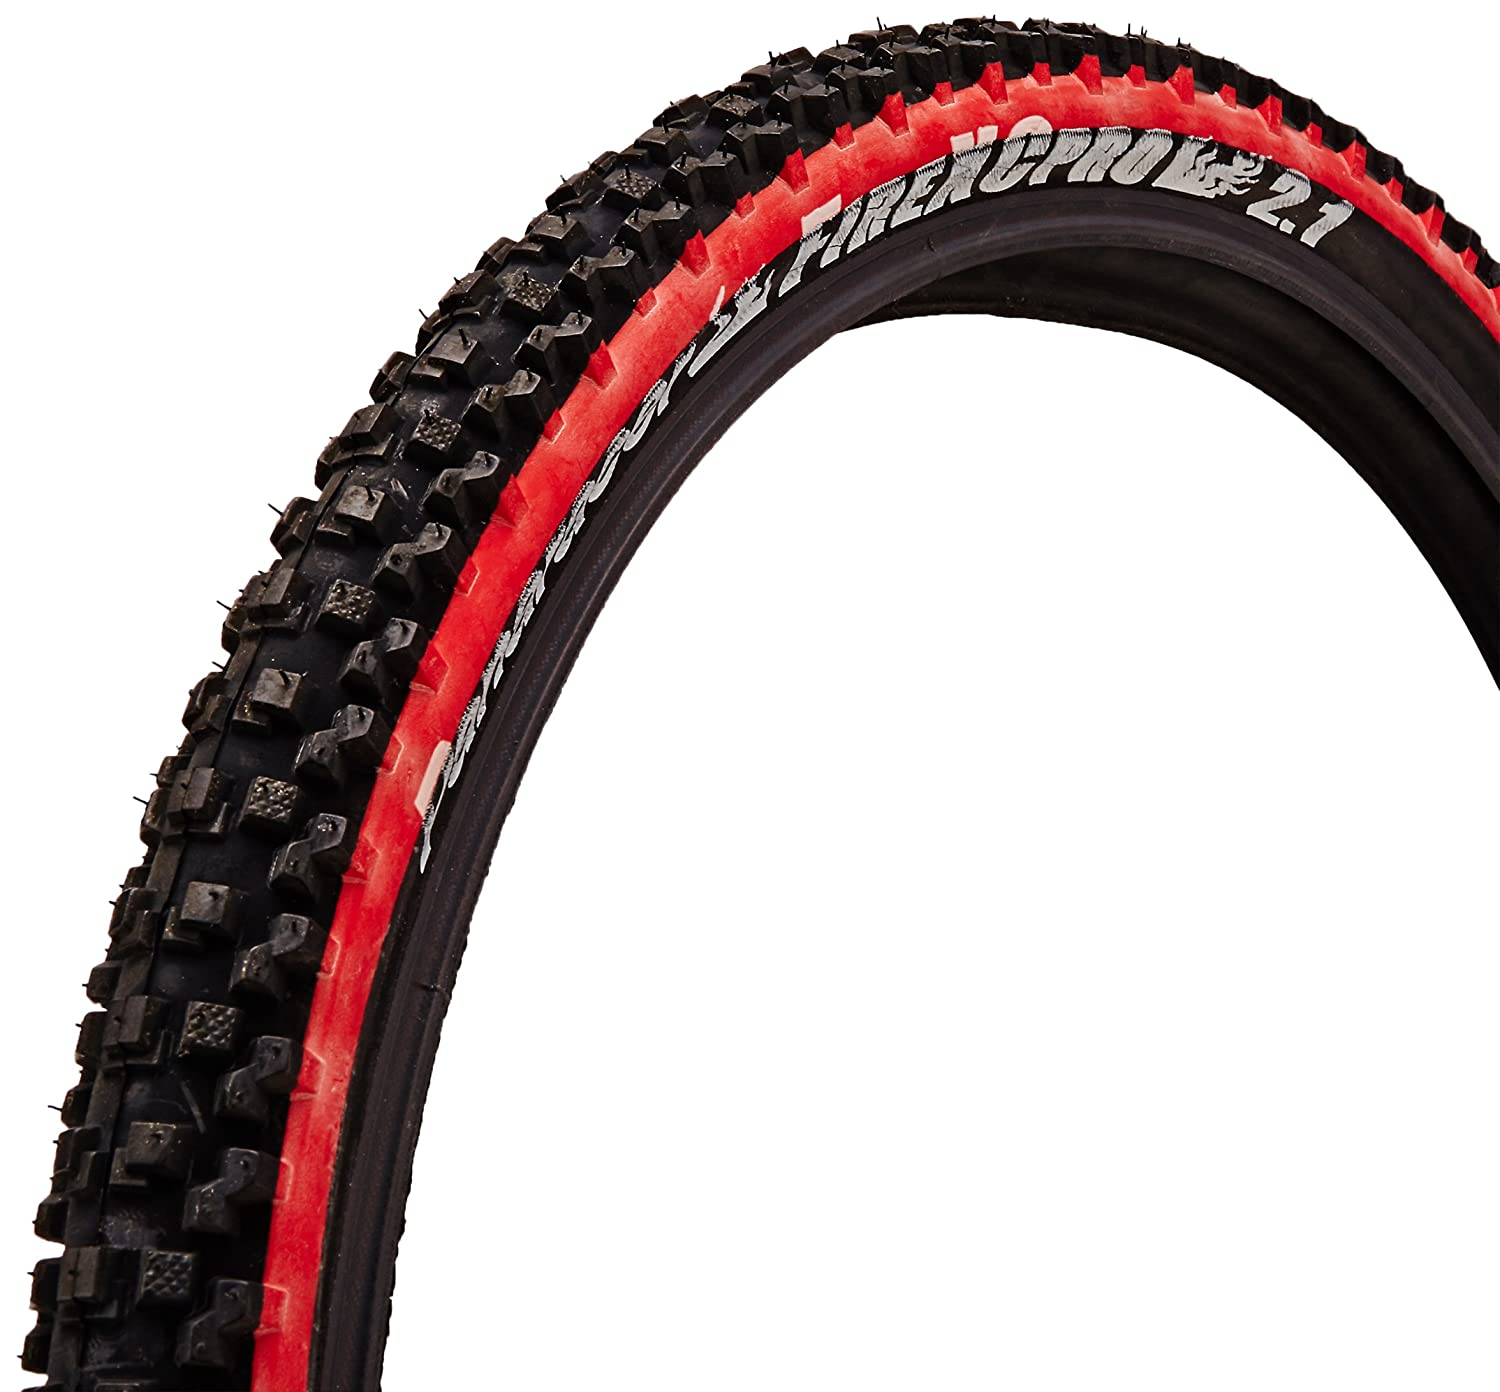 Amazon.com : Panaracer Fire XC Pro Bicycle Tire (Wire Bead, 26x2.1 ...